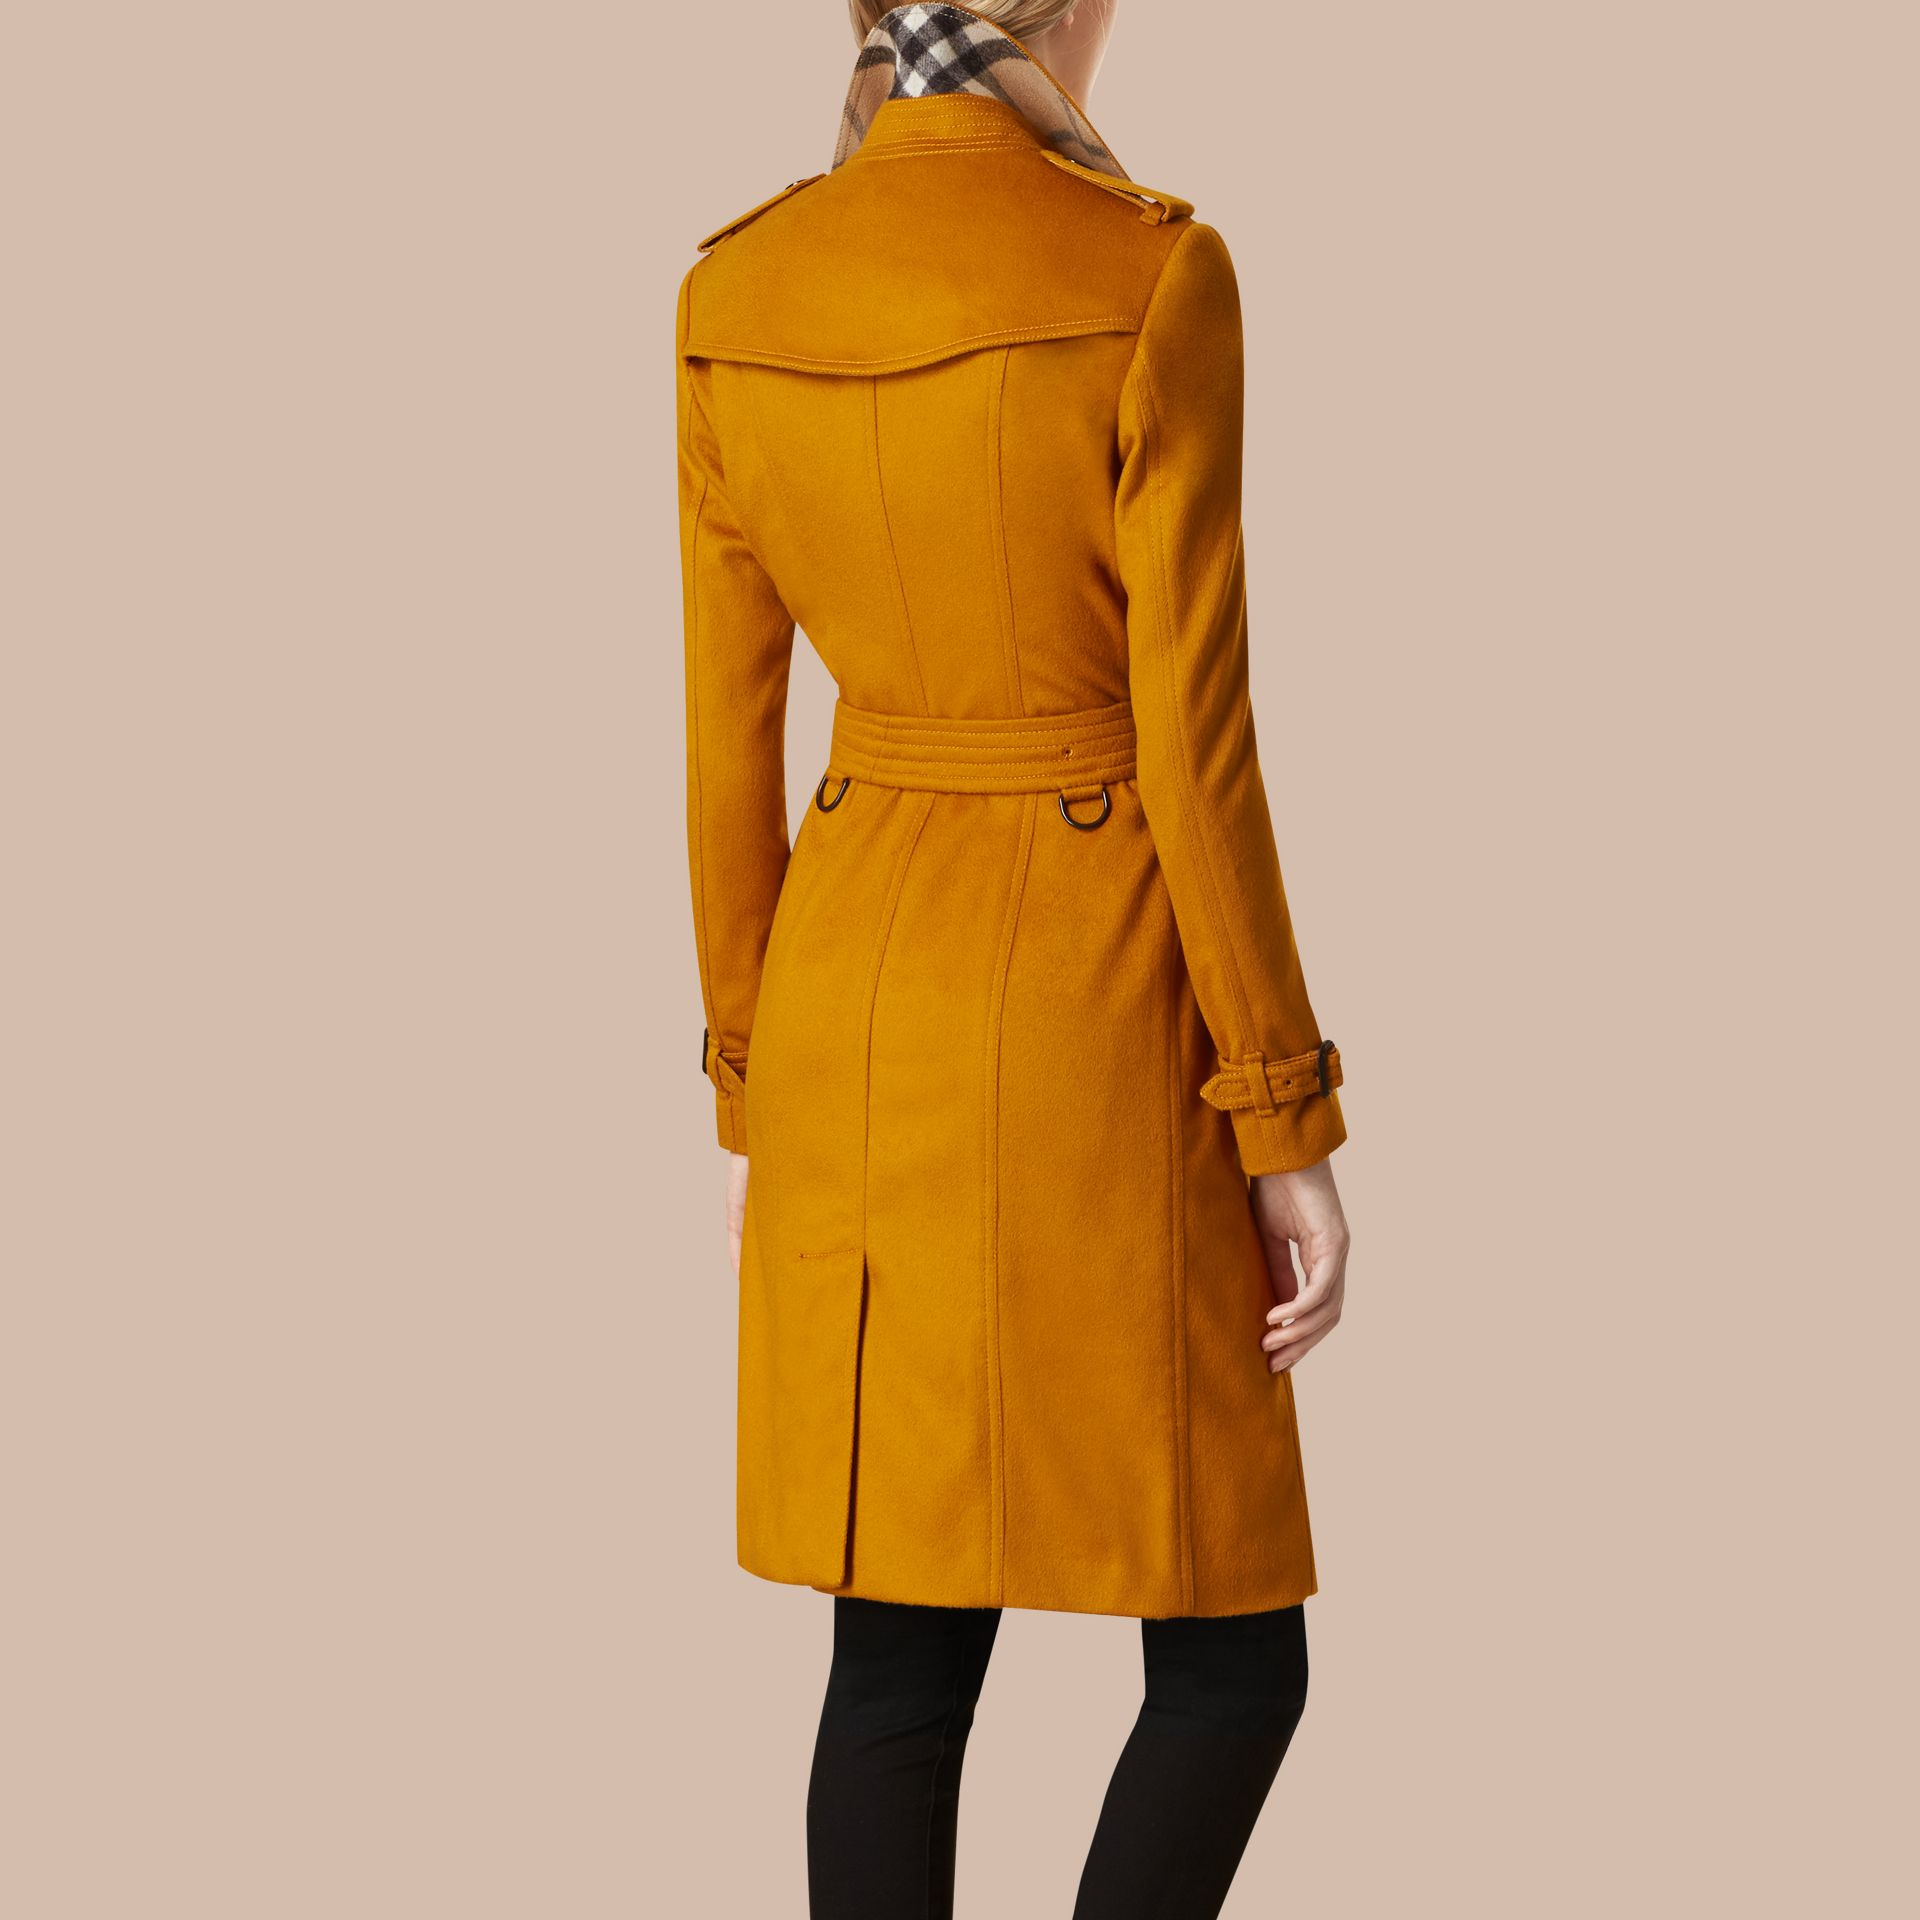 Umber yellow Sandringham Fit Cashmere Trench Coat Umber Yellow - gallery image 3